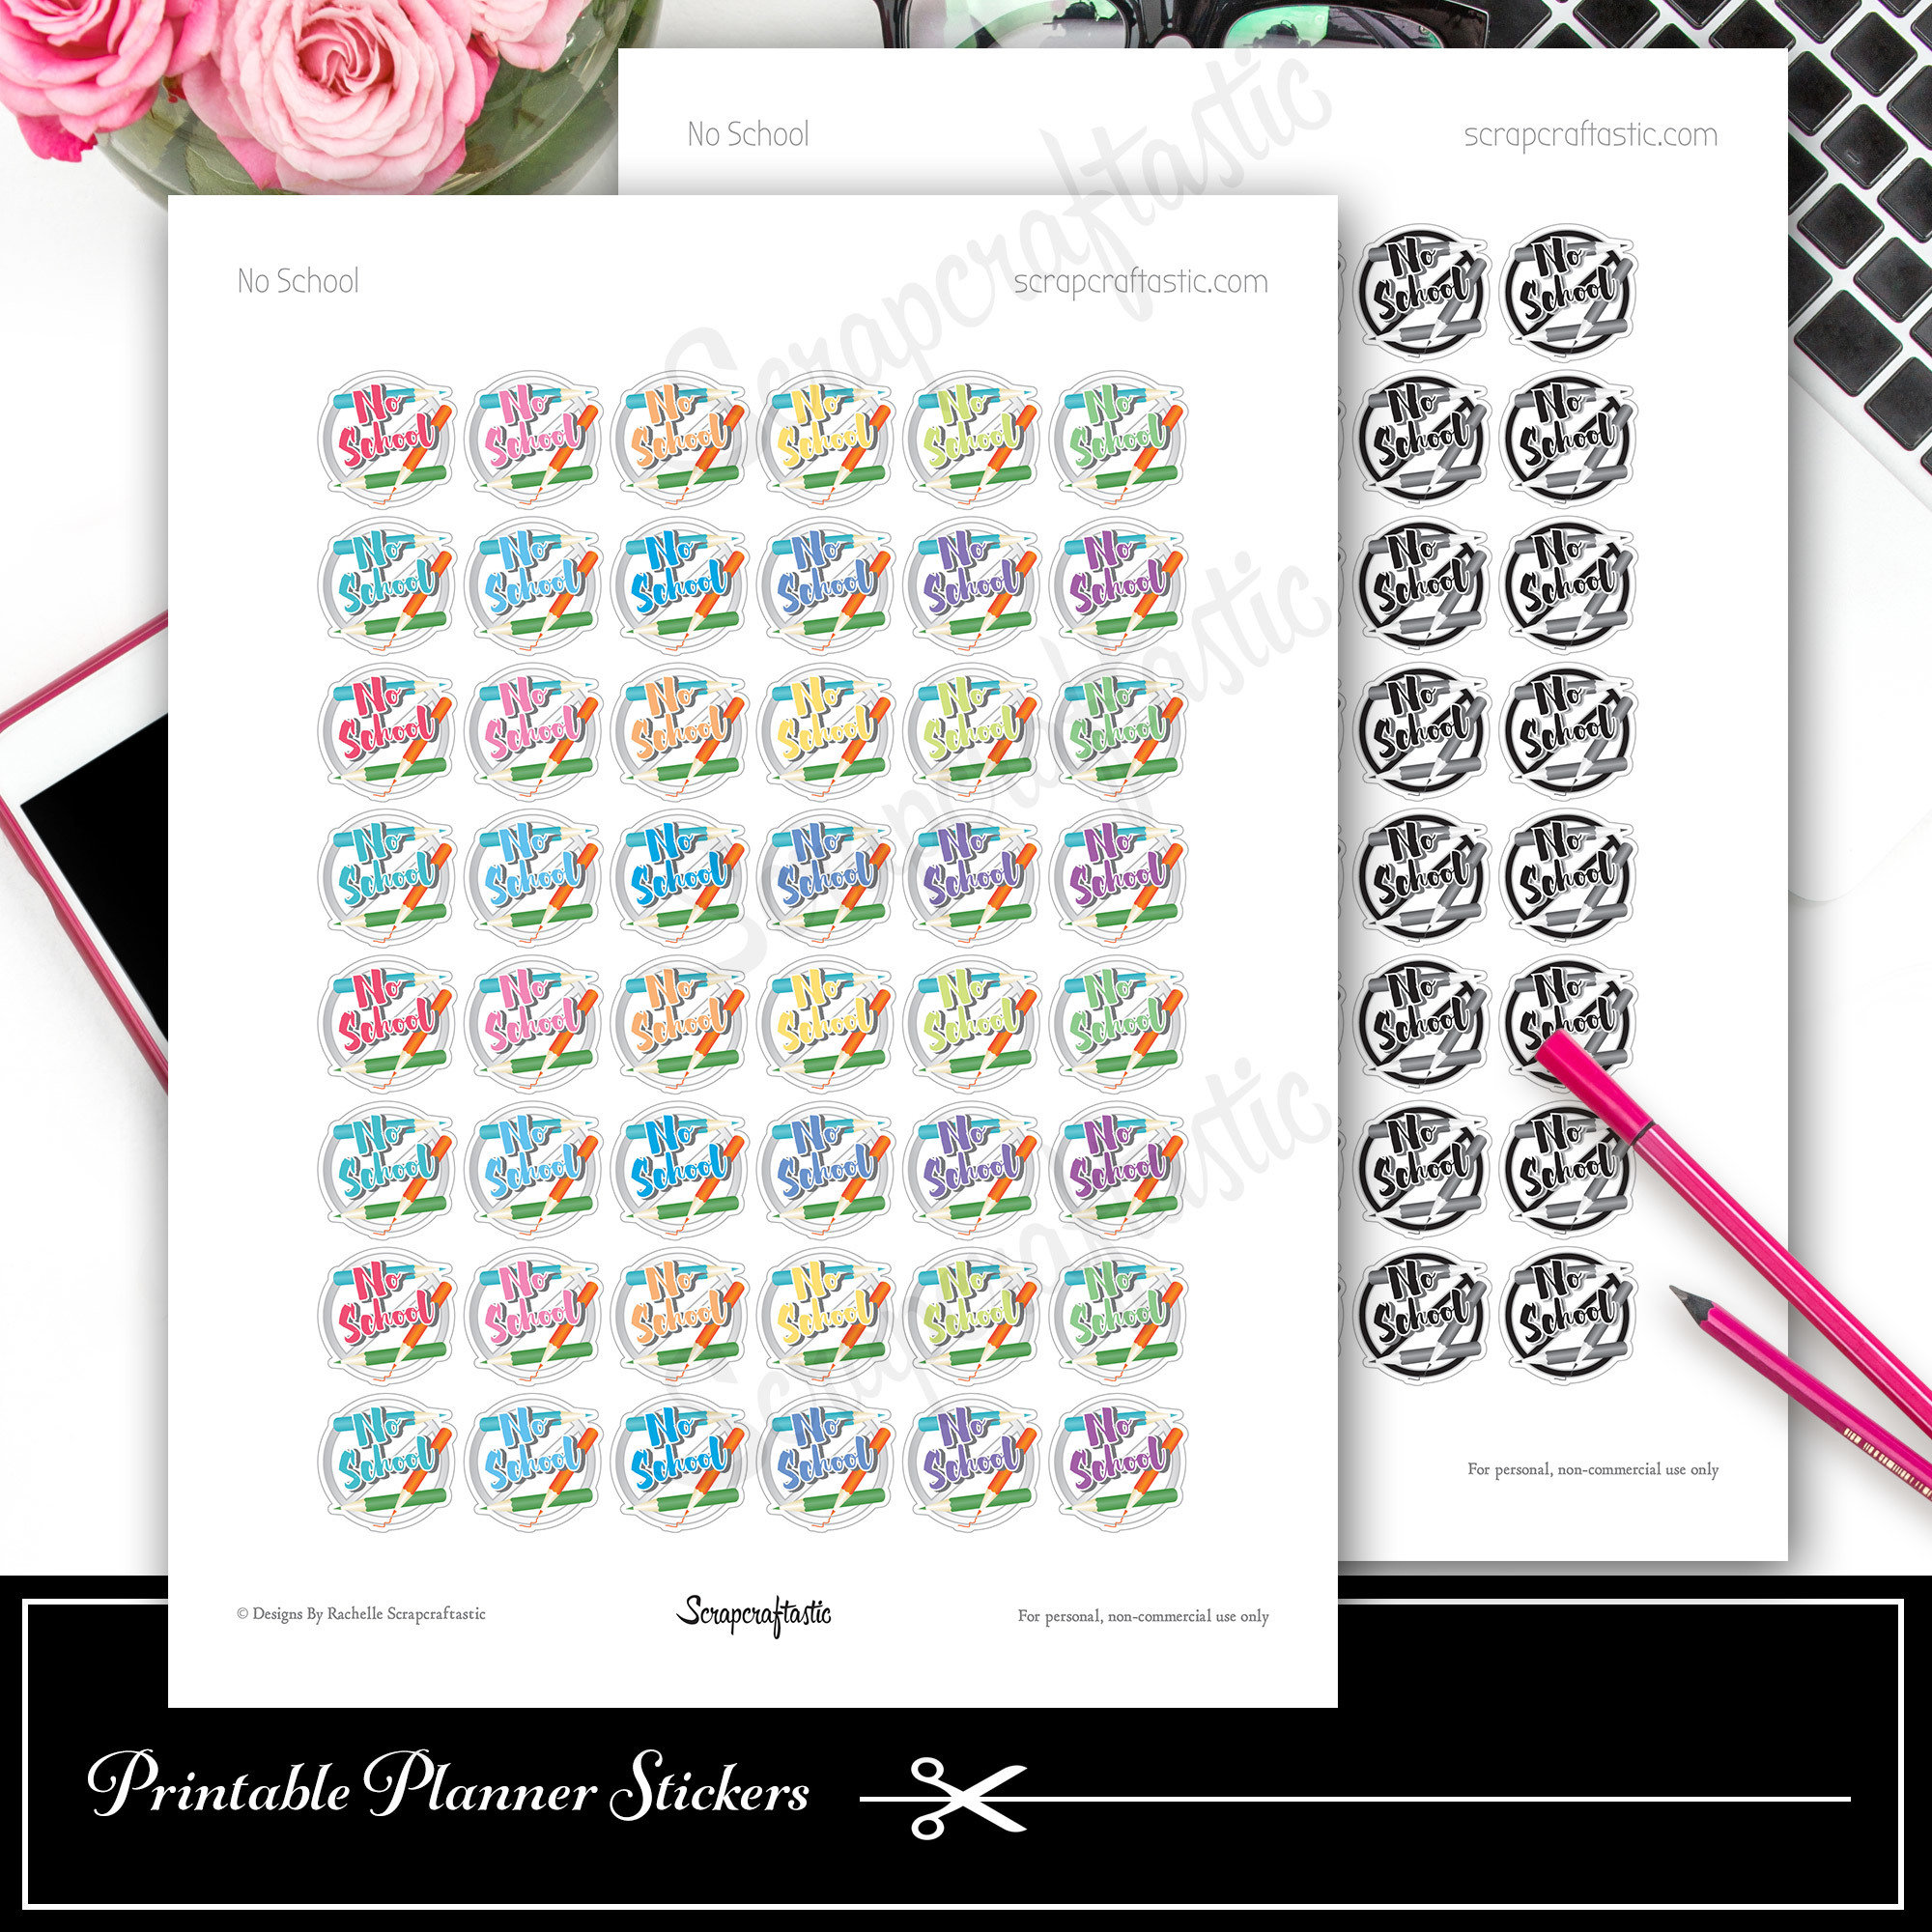 No School Printable Planner Stickers for Decor Planning in Paper Planners, Traveler's Notebooks, A5 Planners, Personal Planners 90008